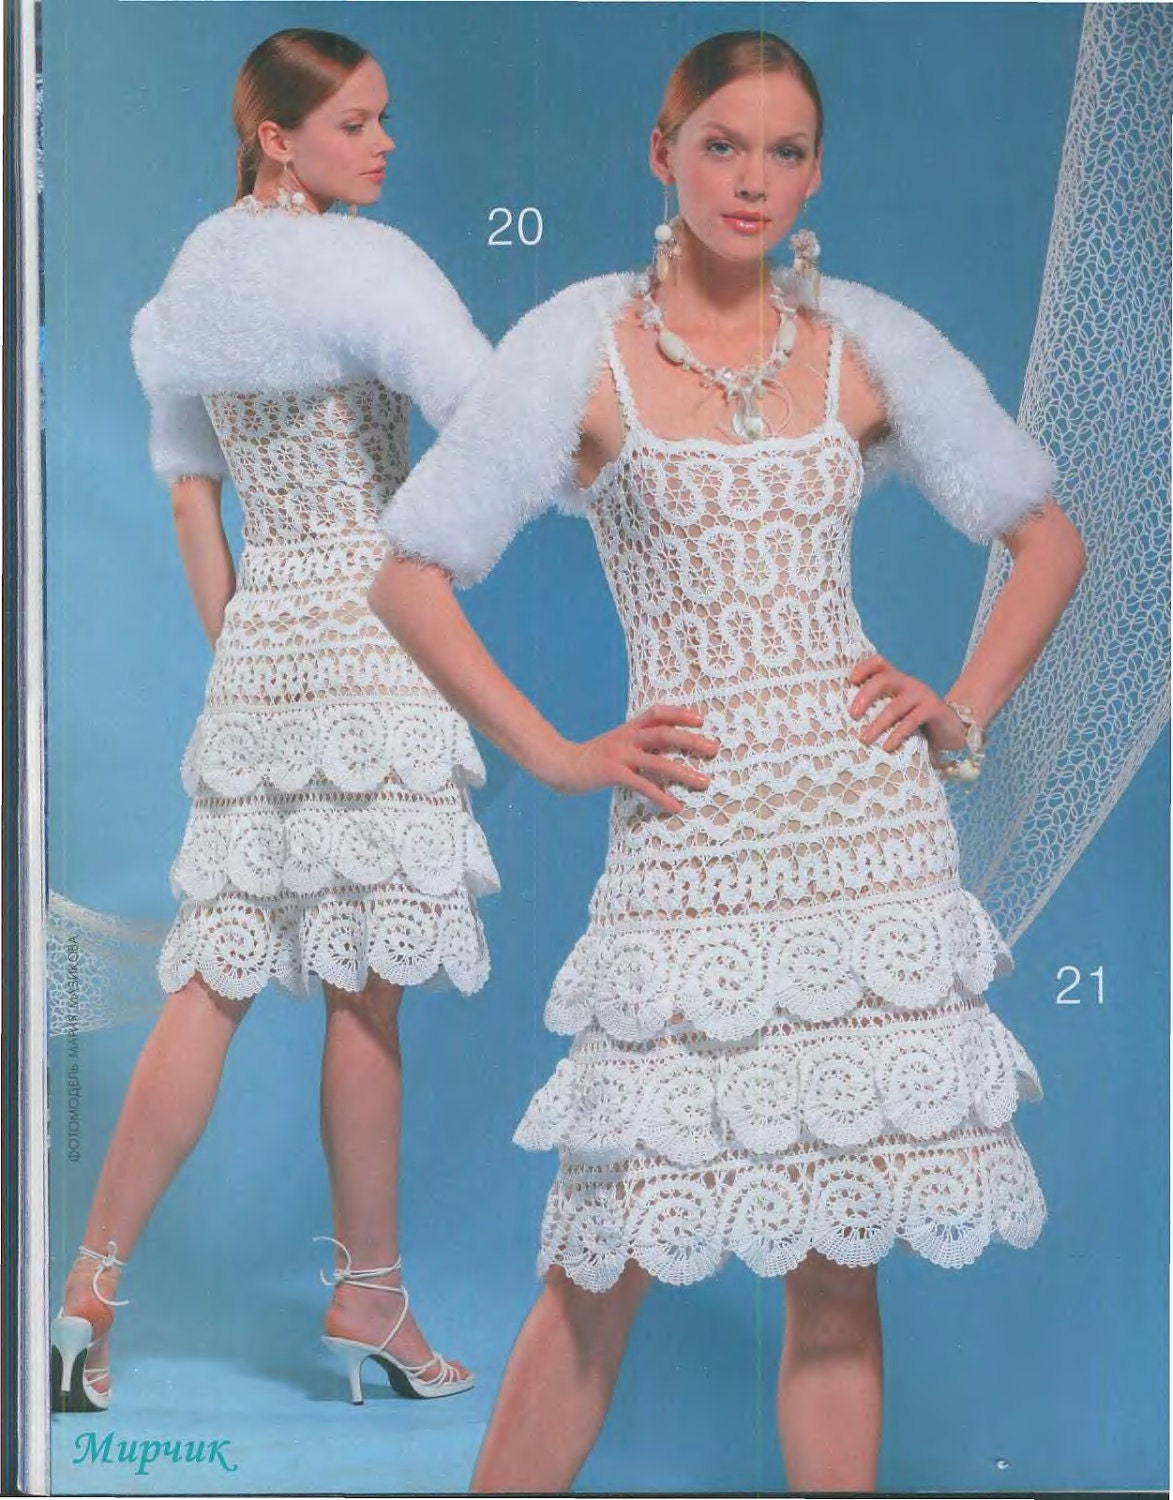 Find me all the crochet patterns for wedding dresses find me all the crochet patterns for wedding dresses 89 bankloansurffo Images